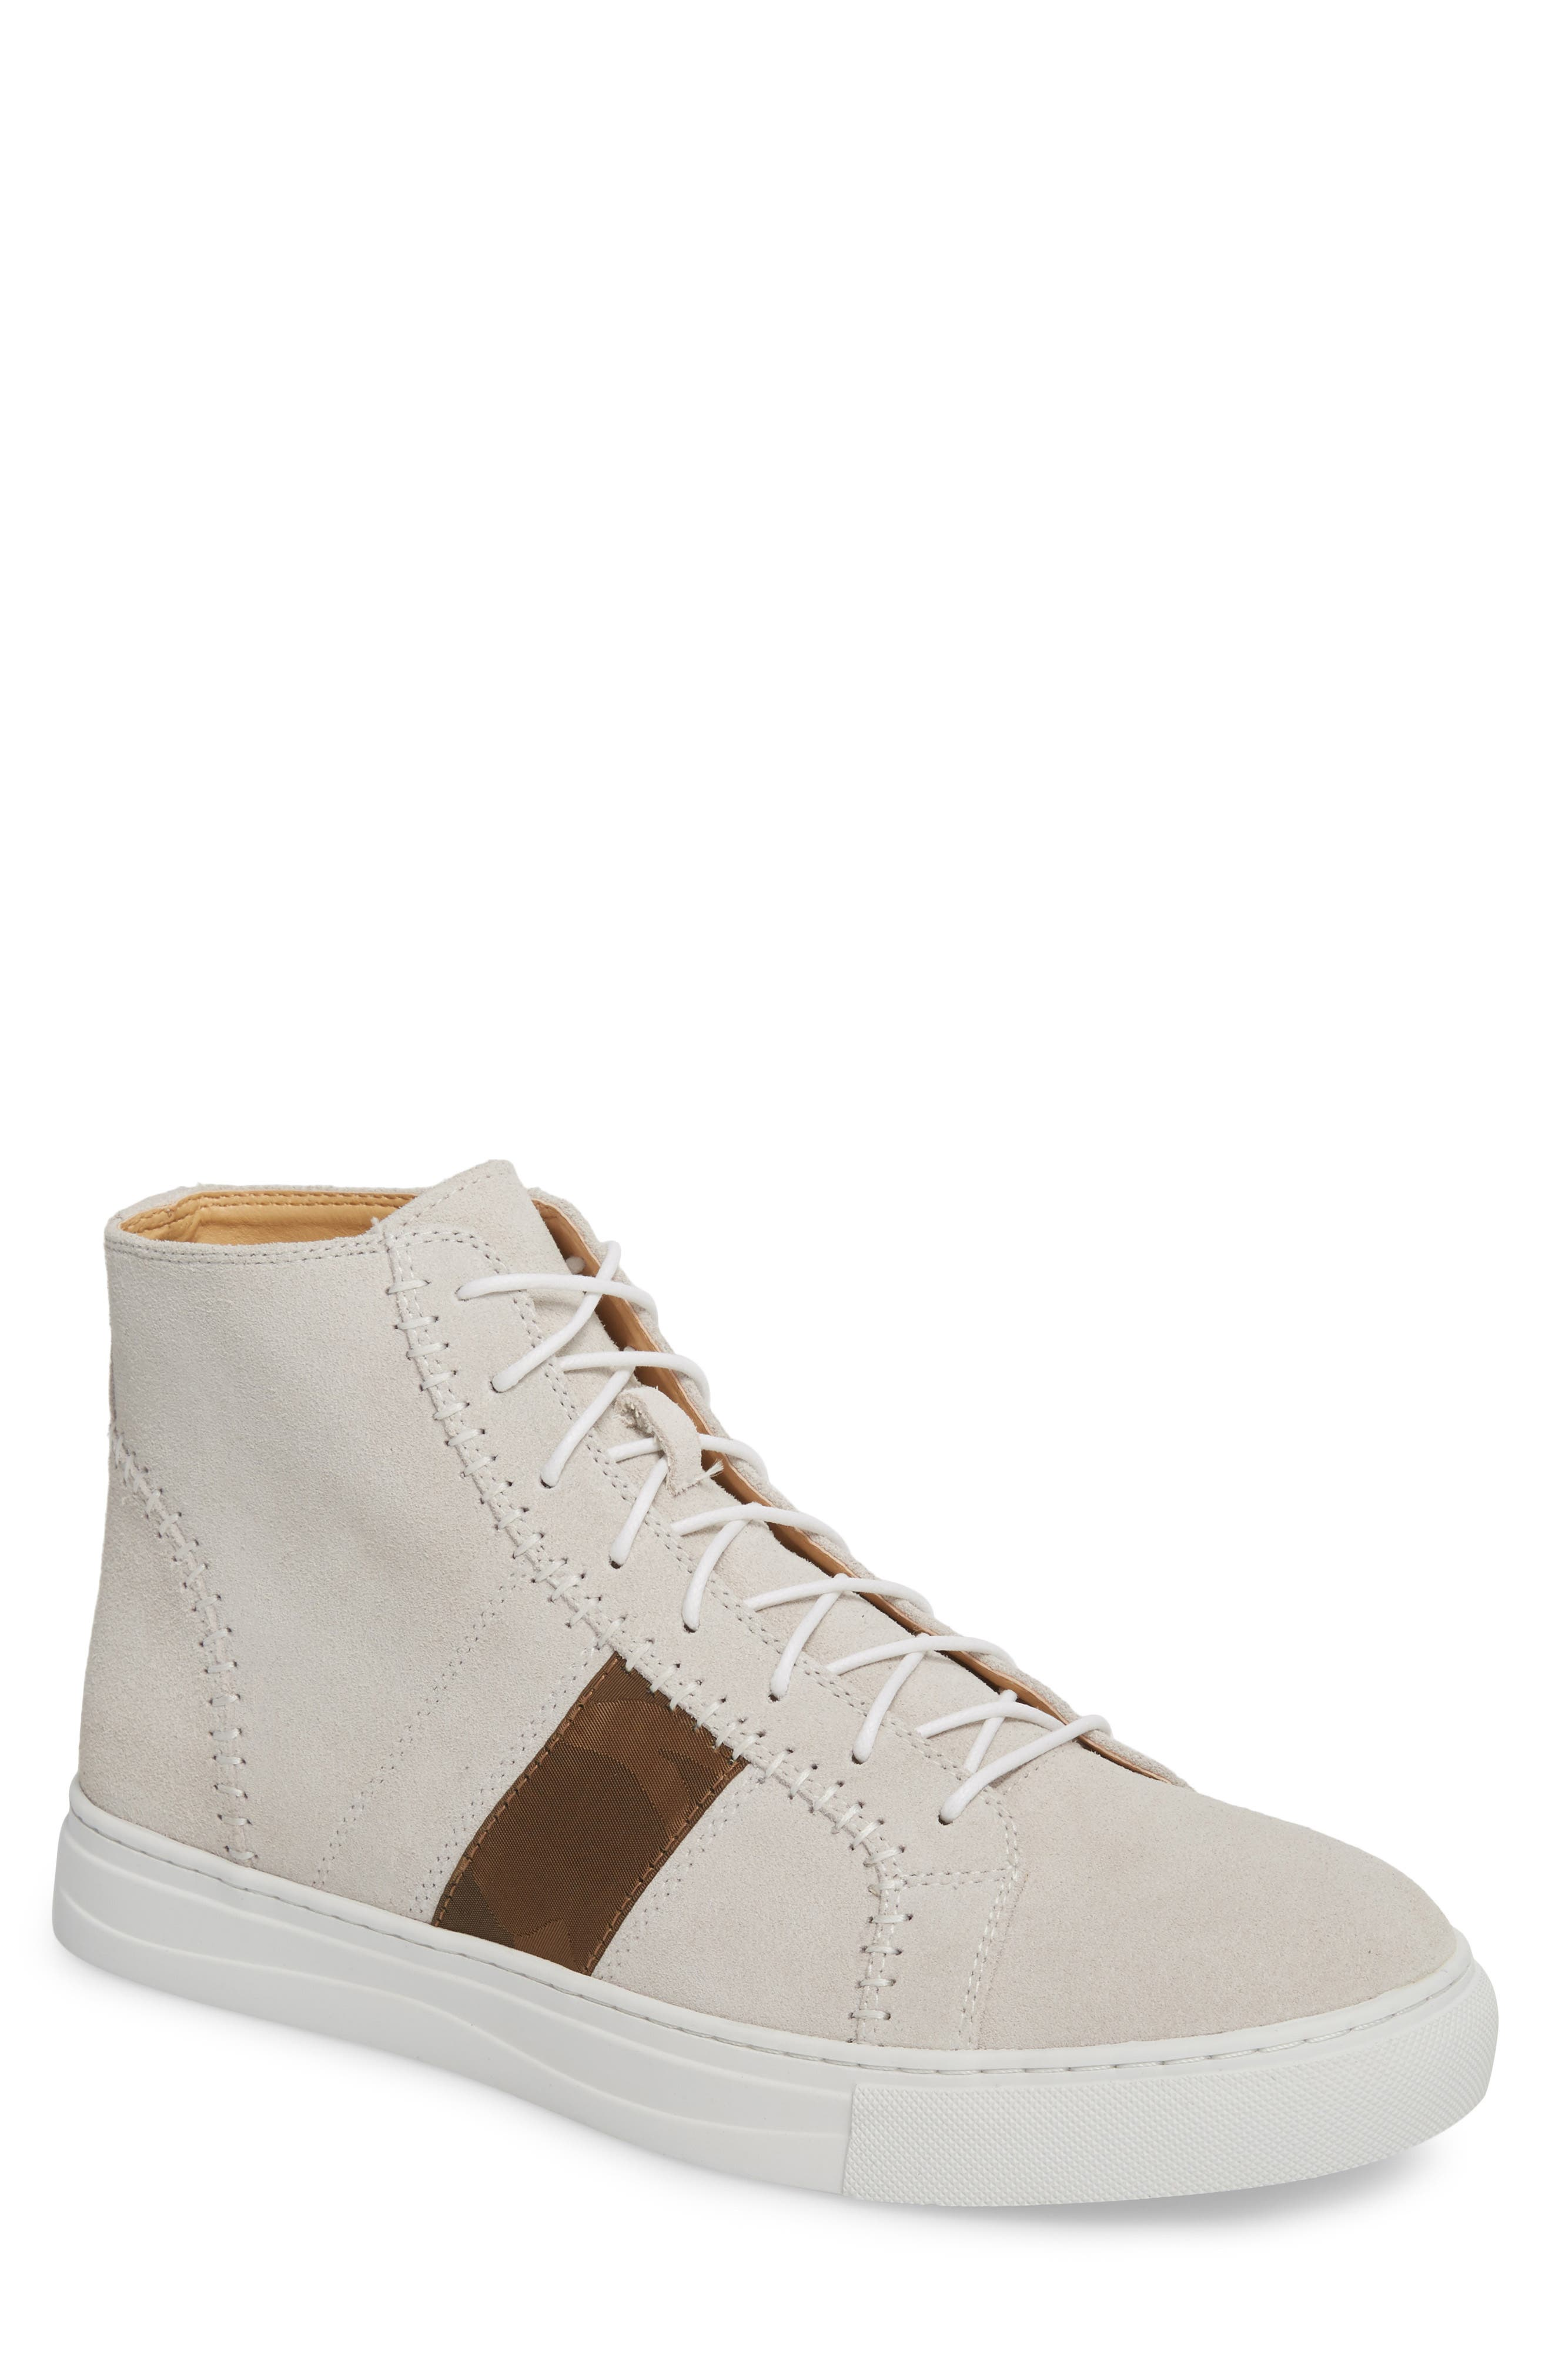 High Top Sneaker,                             Main thumbnail 1, color,                             White Suede